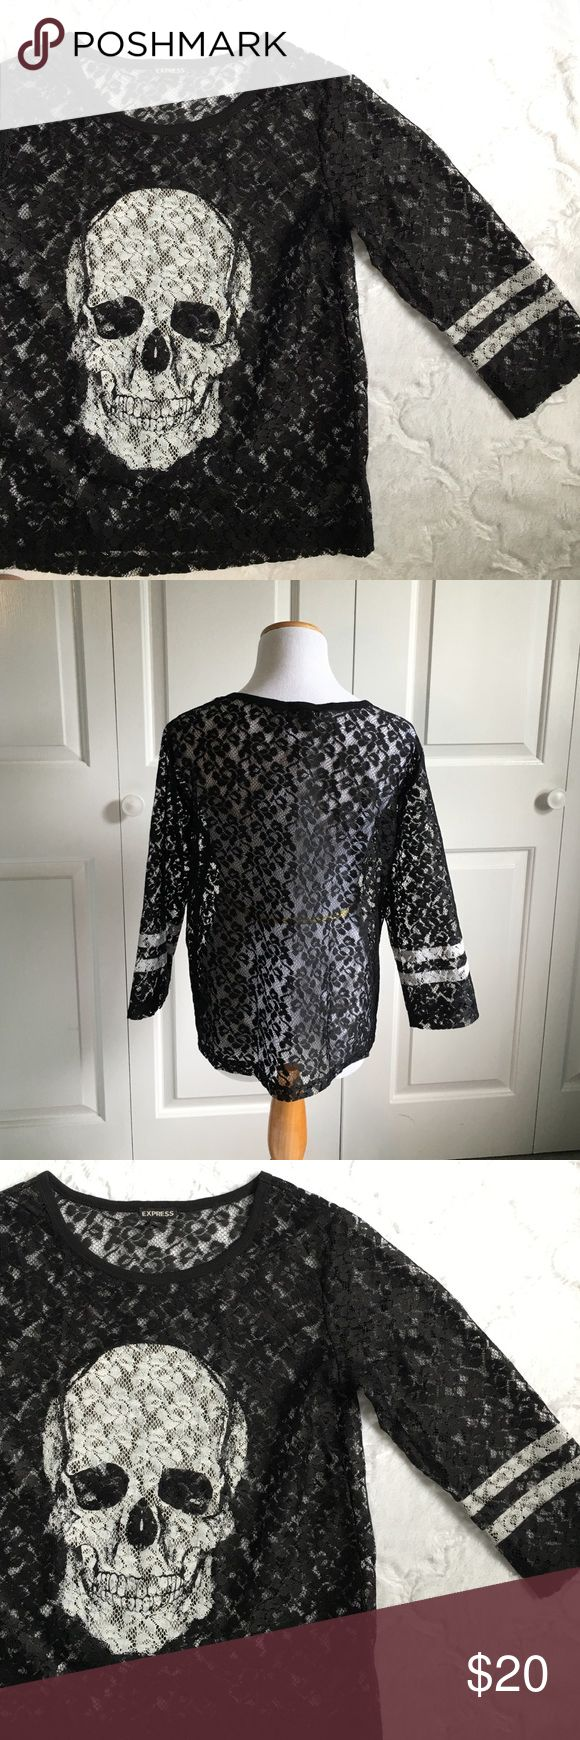 Black Lace Skull Top Black lace top with skull detail. Boxy style. Sheer. 100% polyester. Excellent condition, worn twice. 3/4 sleeves. Size small but could easily fit a medium. Express Tops